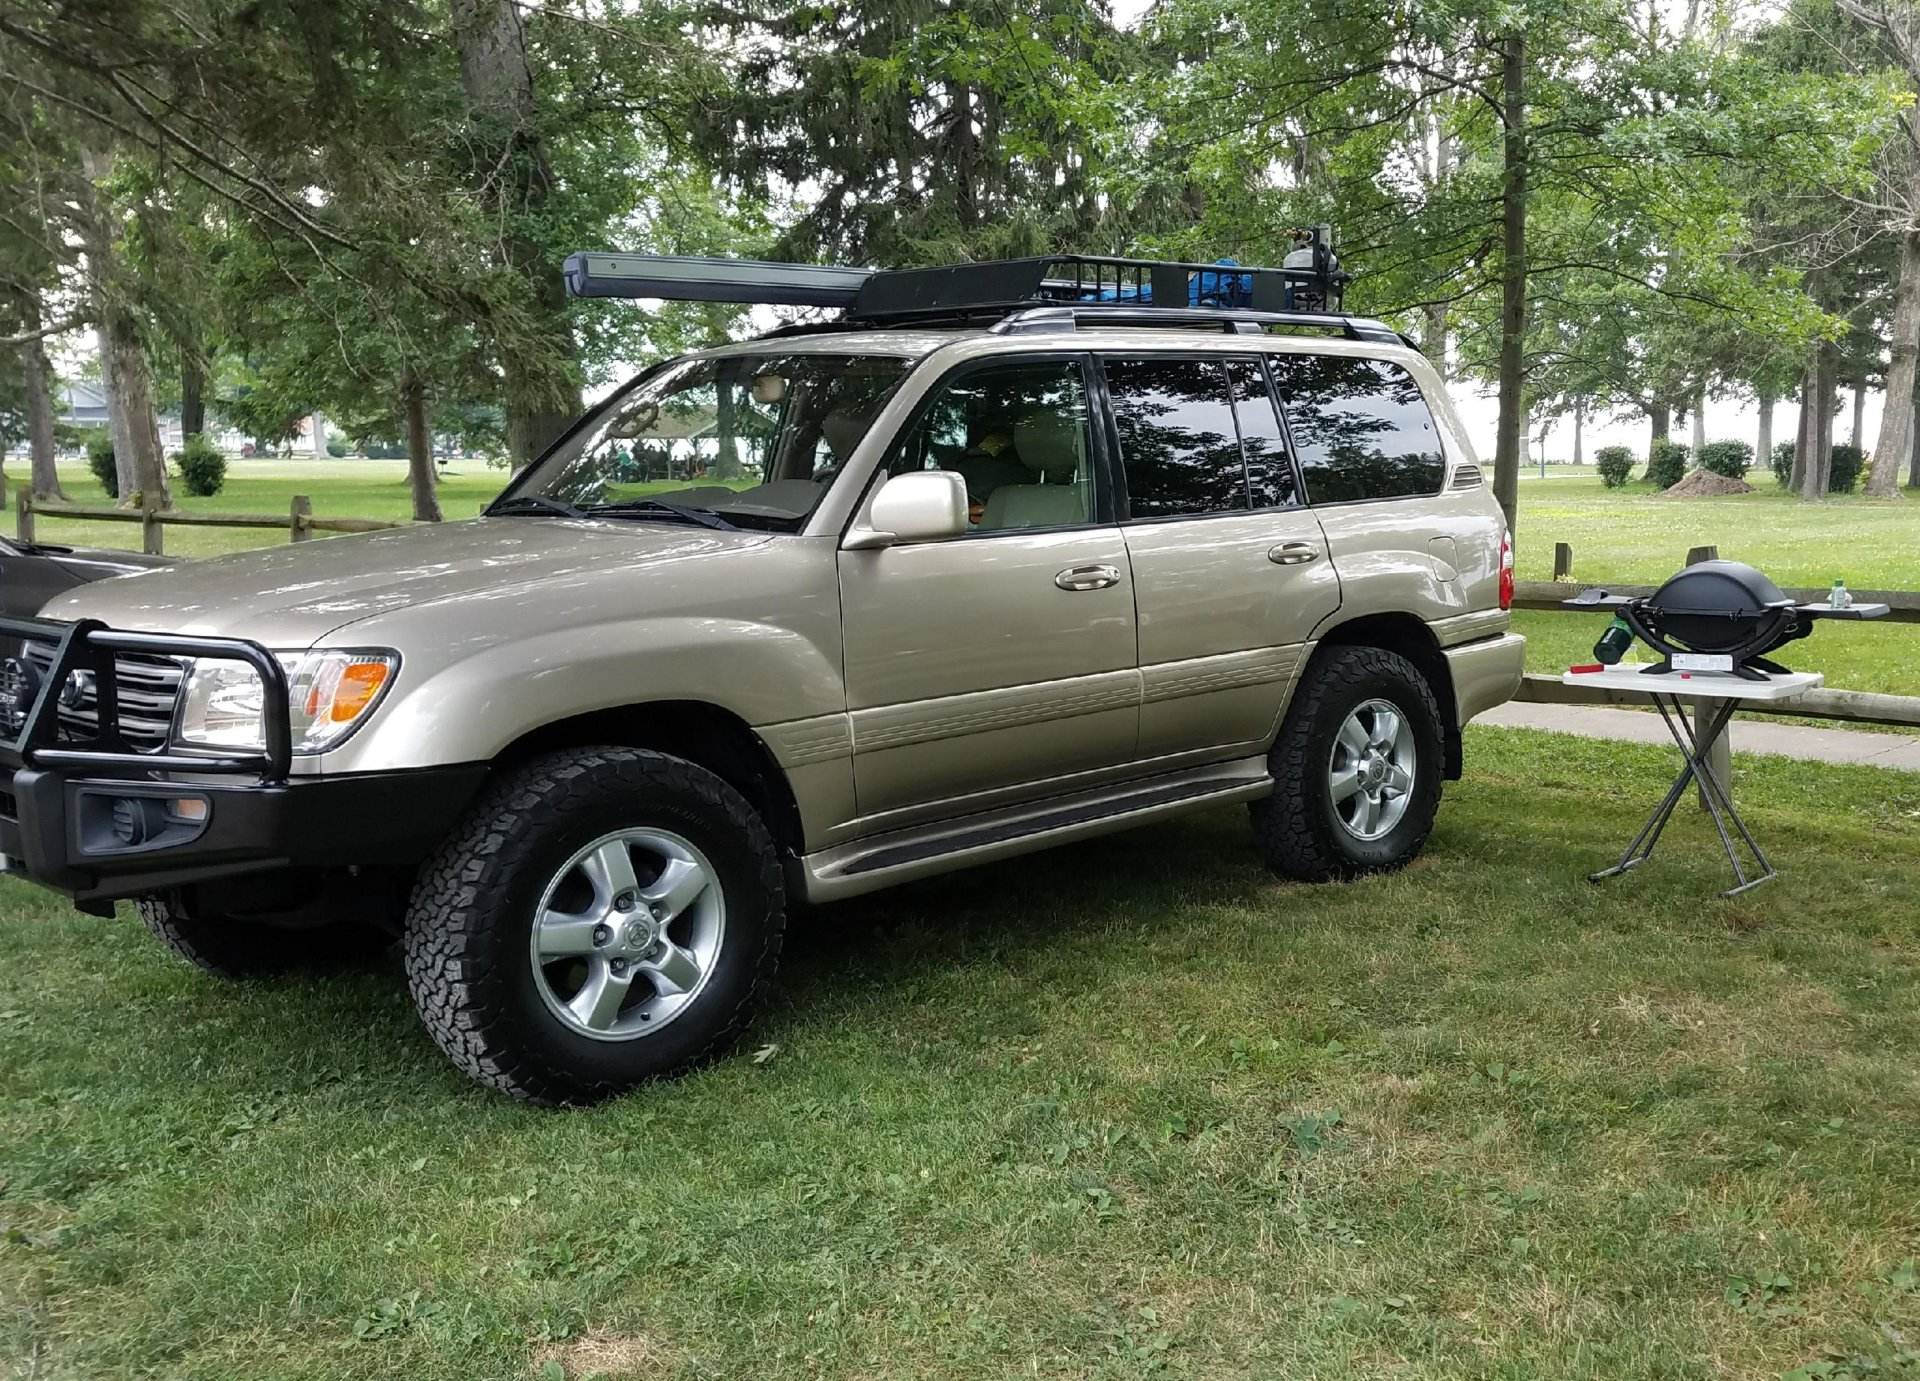 For Sale - 2005 Toyota land cruiser from vegas, florida rust free